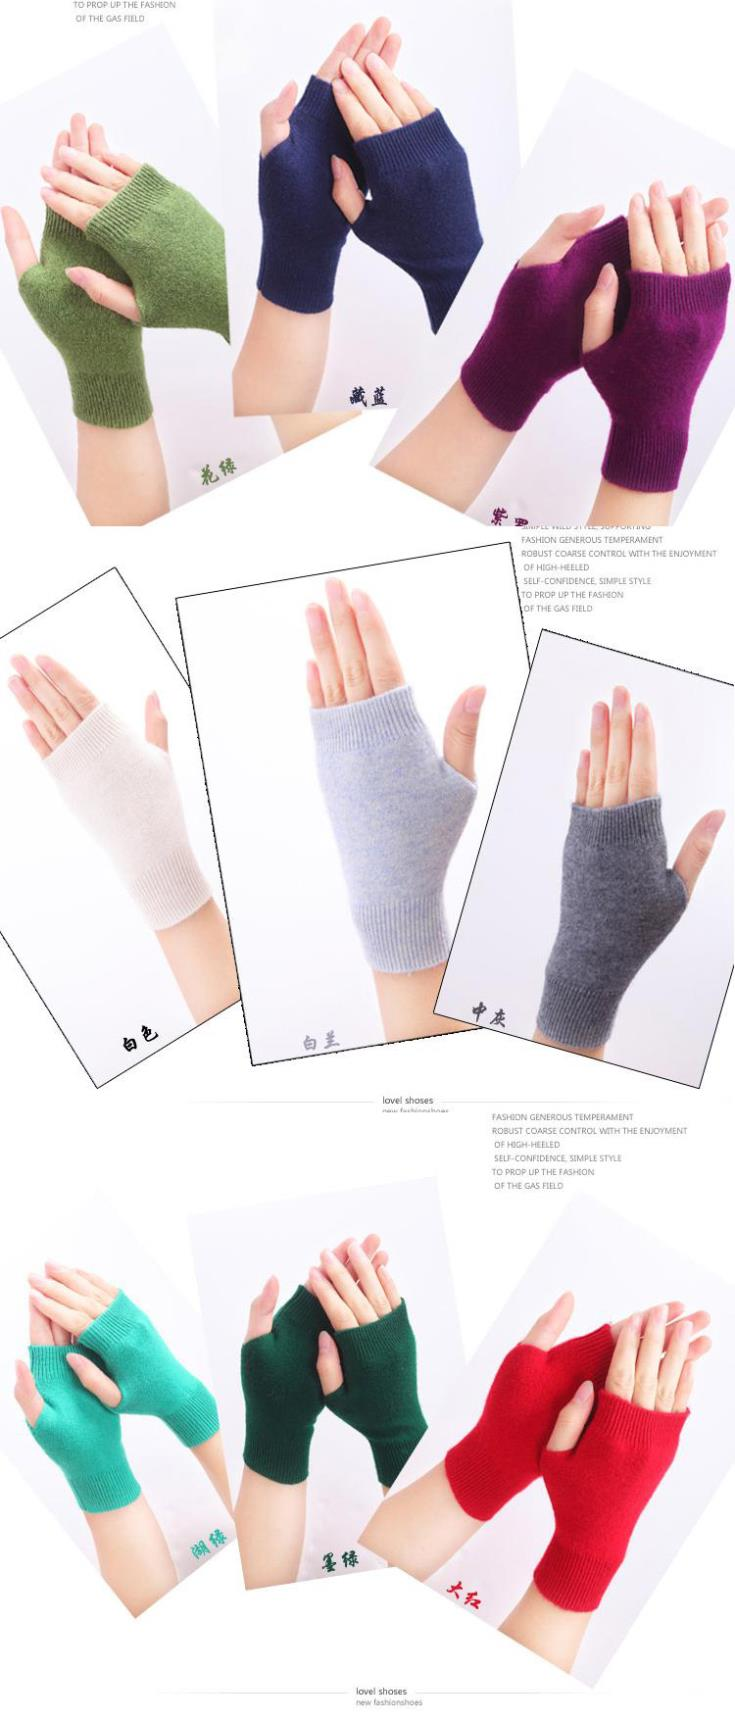 HTB1oE9SGFXXXXaPXpXXq6xXFXXXW - Genuine Fine Sheep Wool Mitt Exposed Finger Women's Gloves Winter Autumn Knitted for Women Fingerless Gloves Wrist Mittens